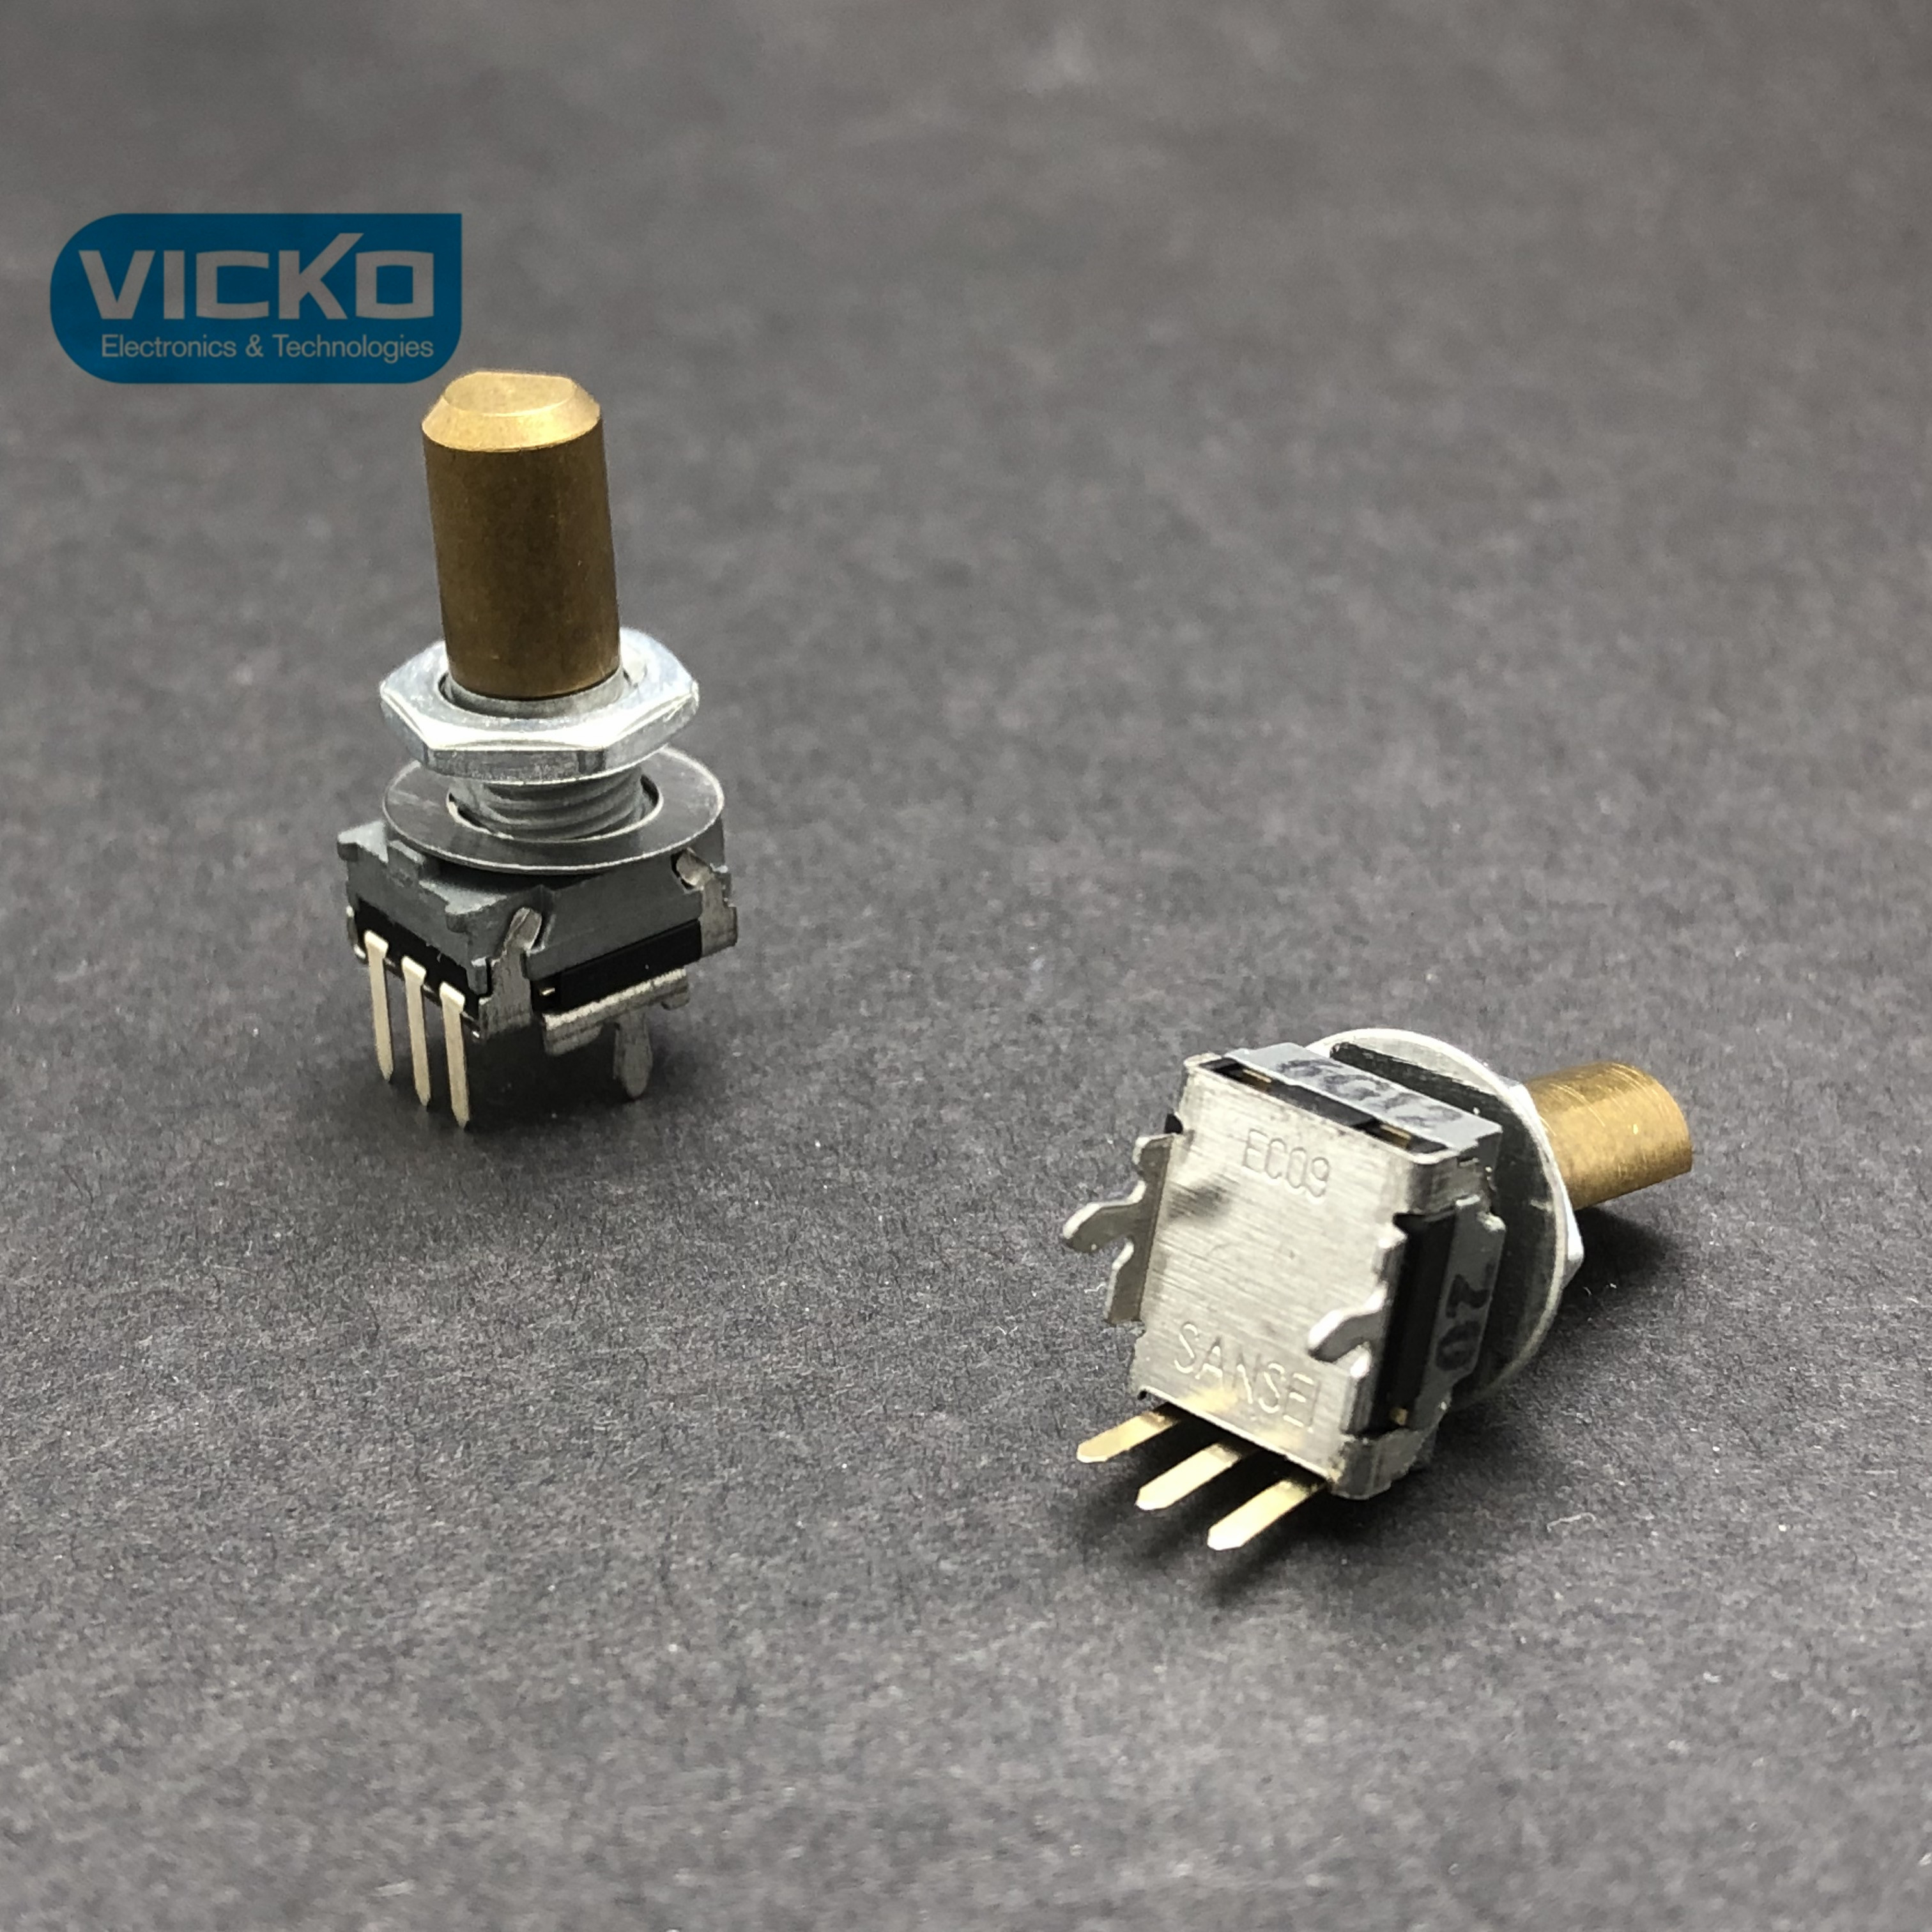 Japan SANSEI EC09 EC09P20 205B Type Encoder with Stepping 20 Point Vertical Handle 16MM switch 3